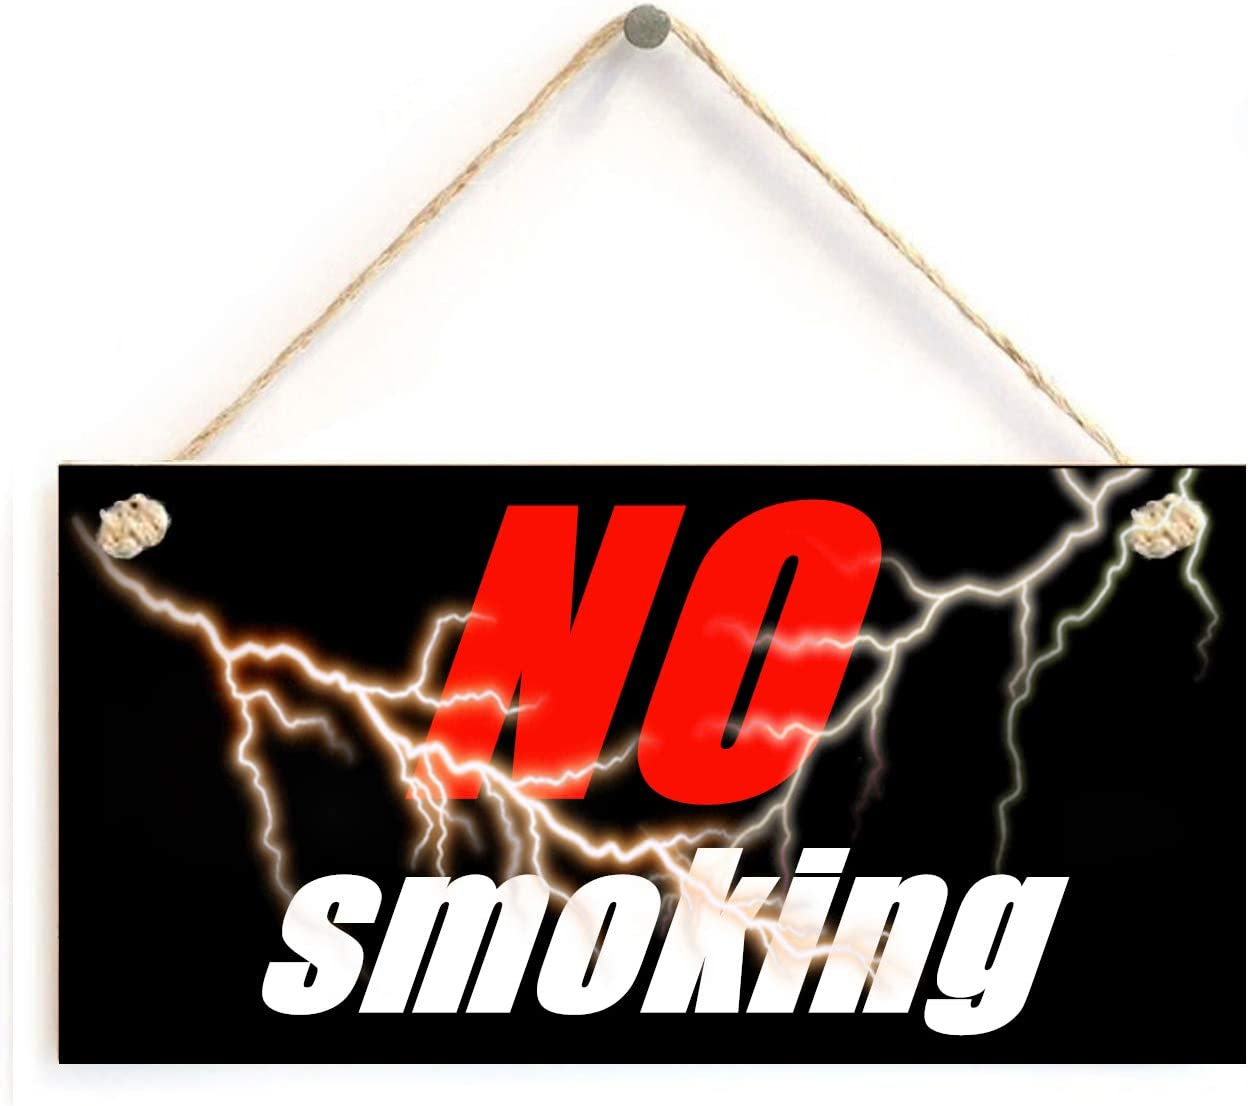 No Smoking Sign - 5 x 10 inch Hanging Funny Signs Decor, Wall Art, Decorative Wood Sign Home Decor, No Smoking Sign for House